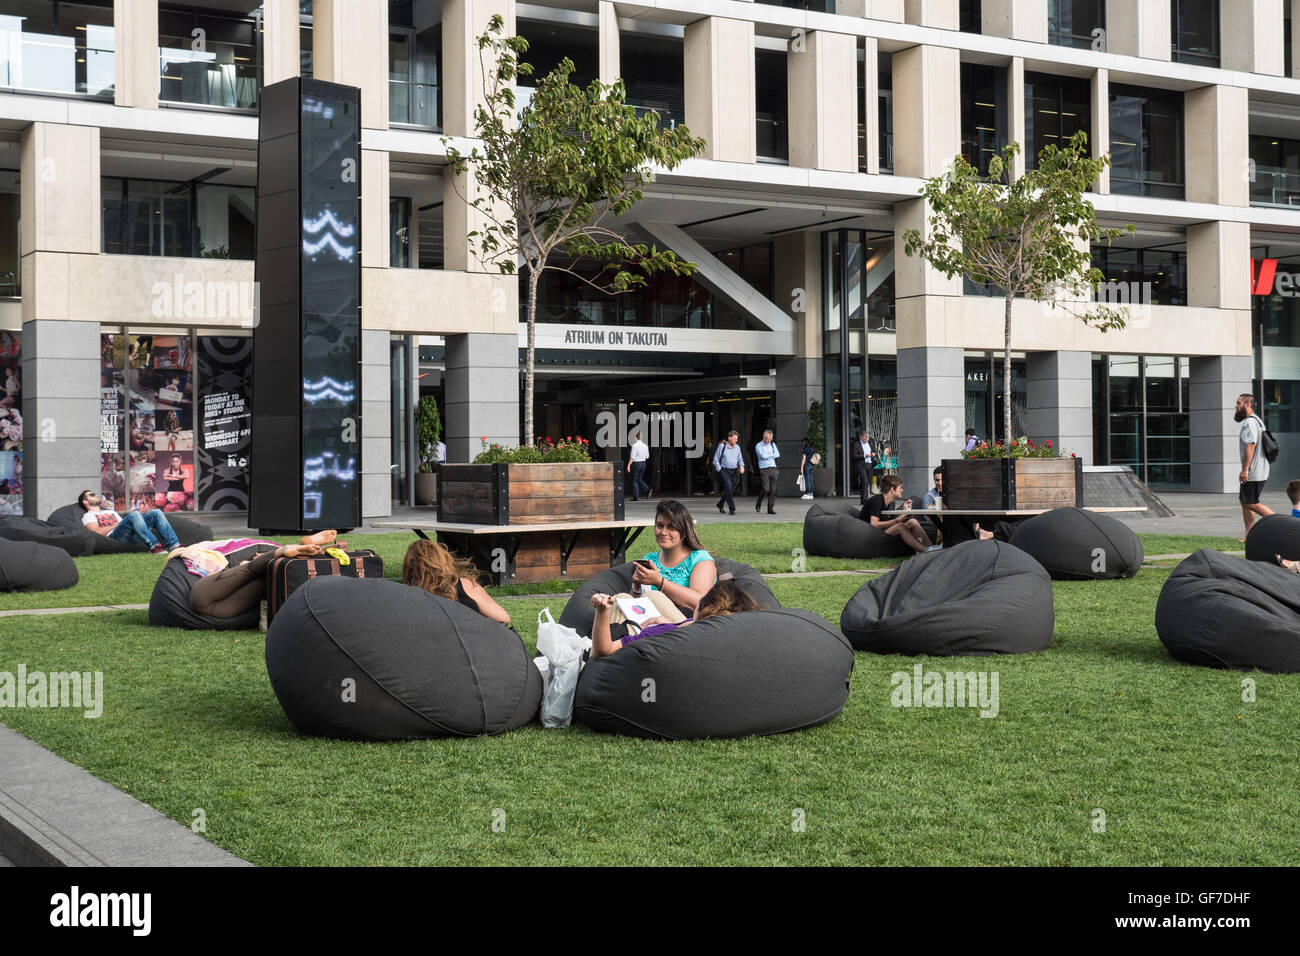 People relaxing on bean bags, Takutai Atrium, Galway Street Auckland, North Island, New Zealand. - Stock Image